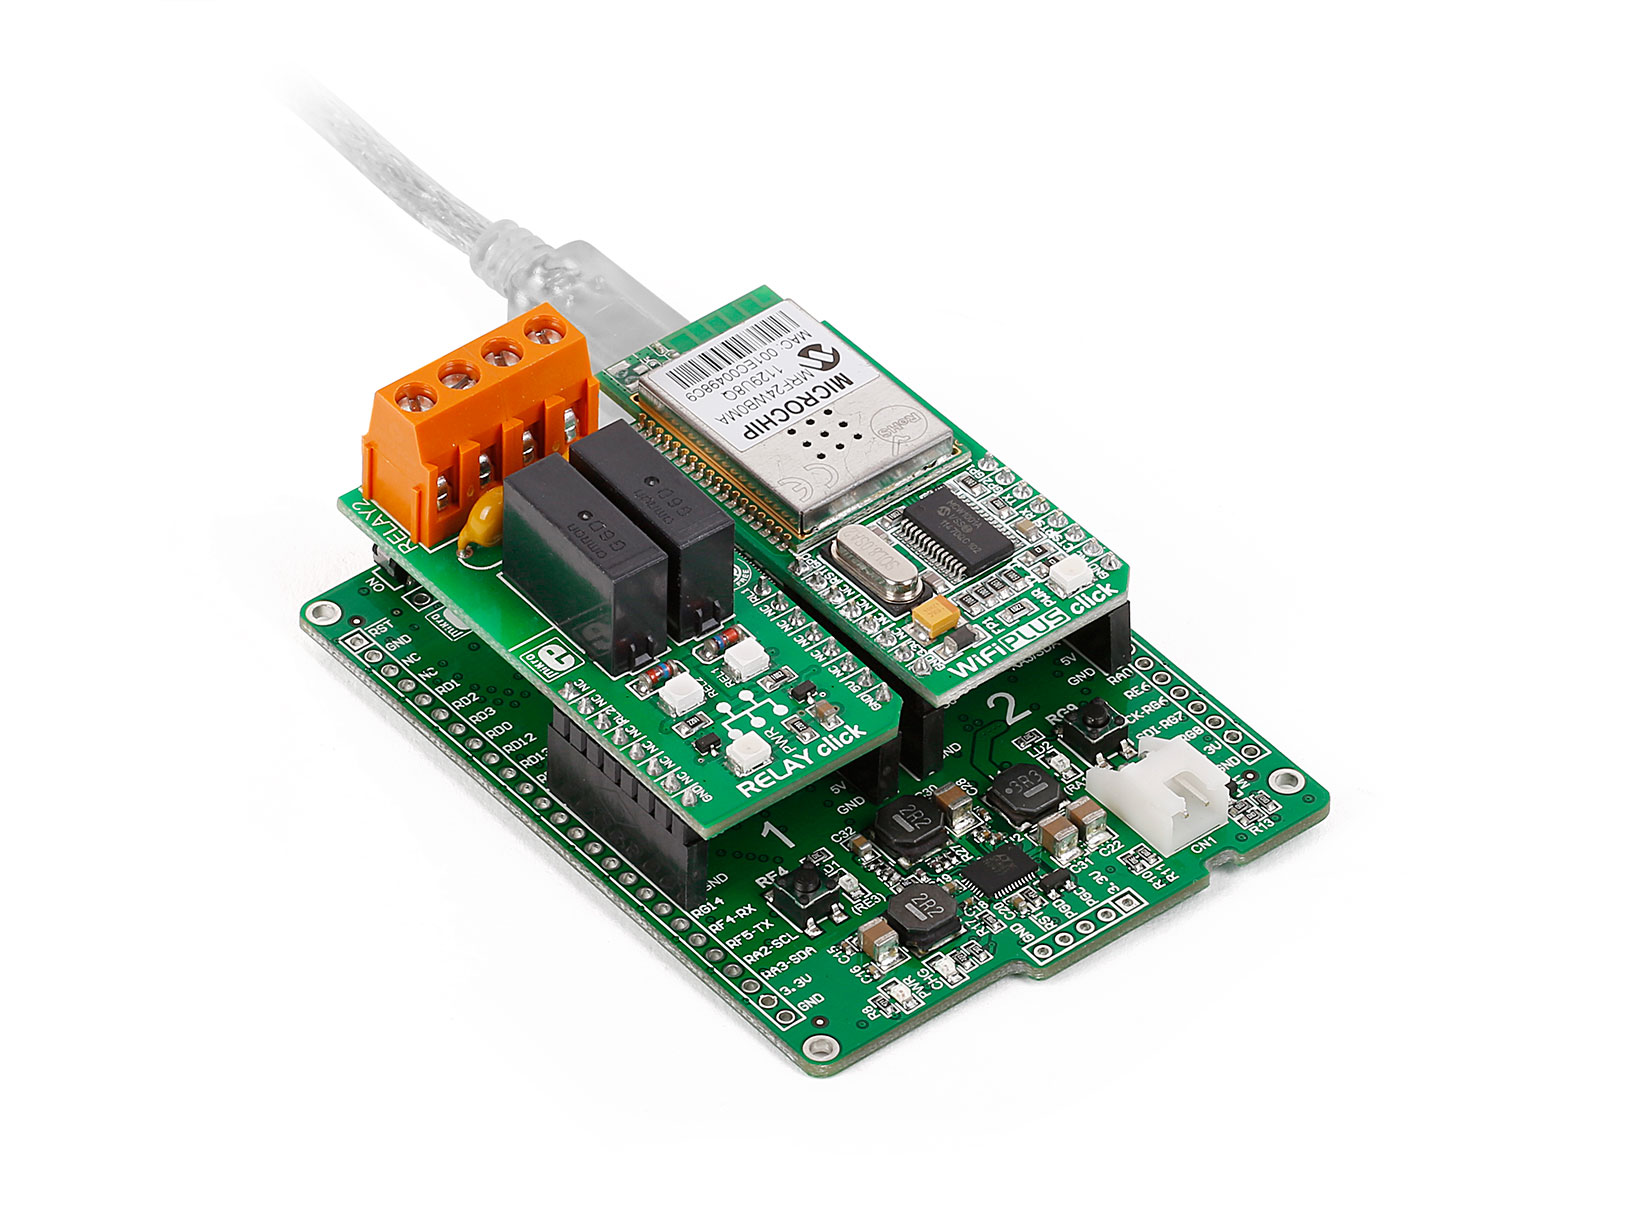 Clicker 2 Development Board